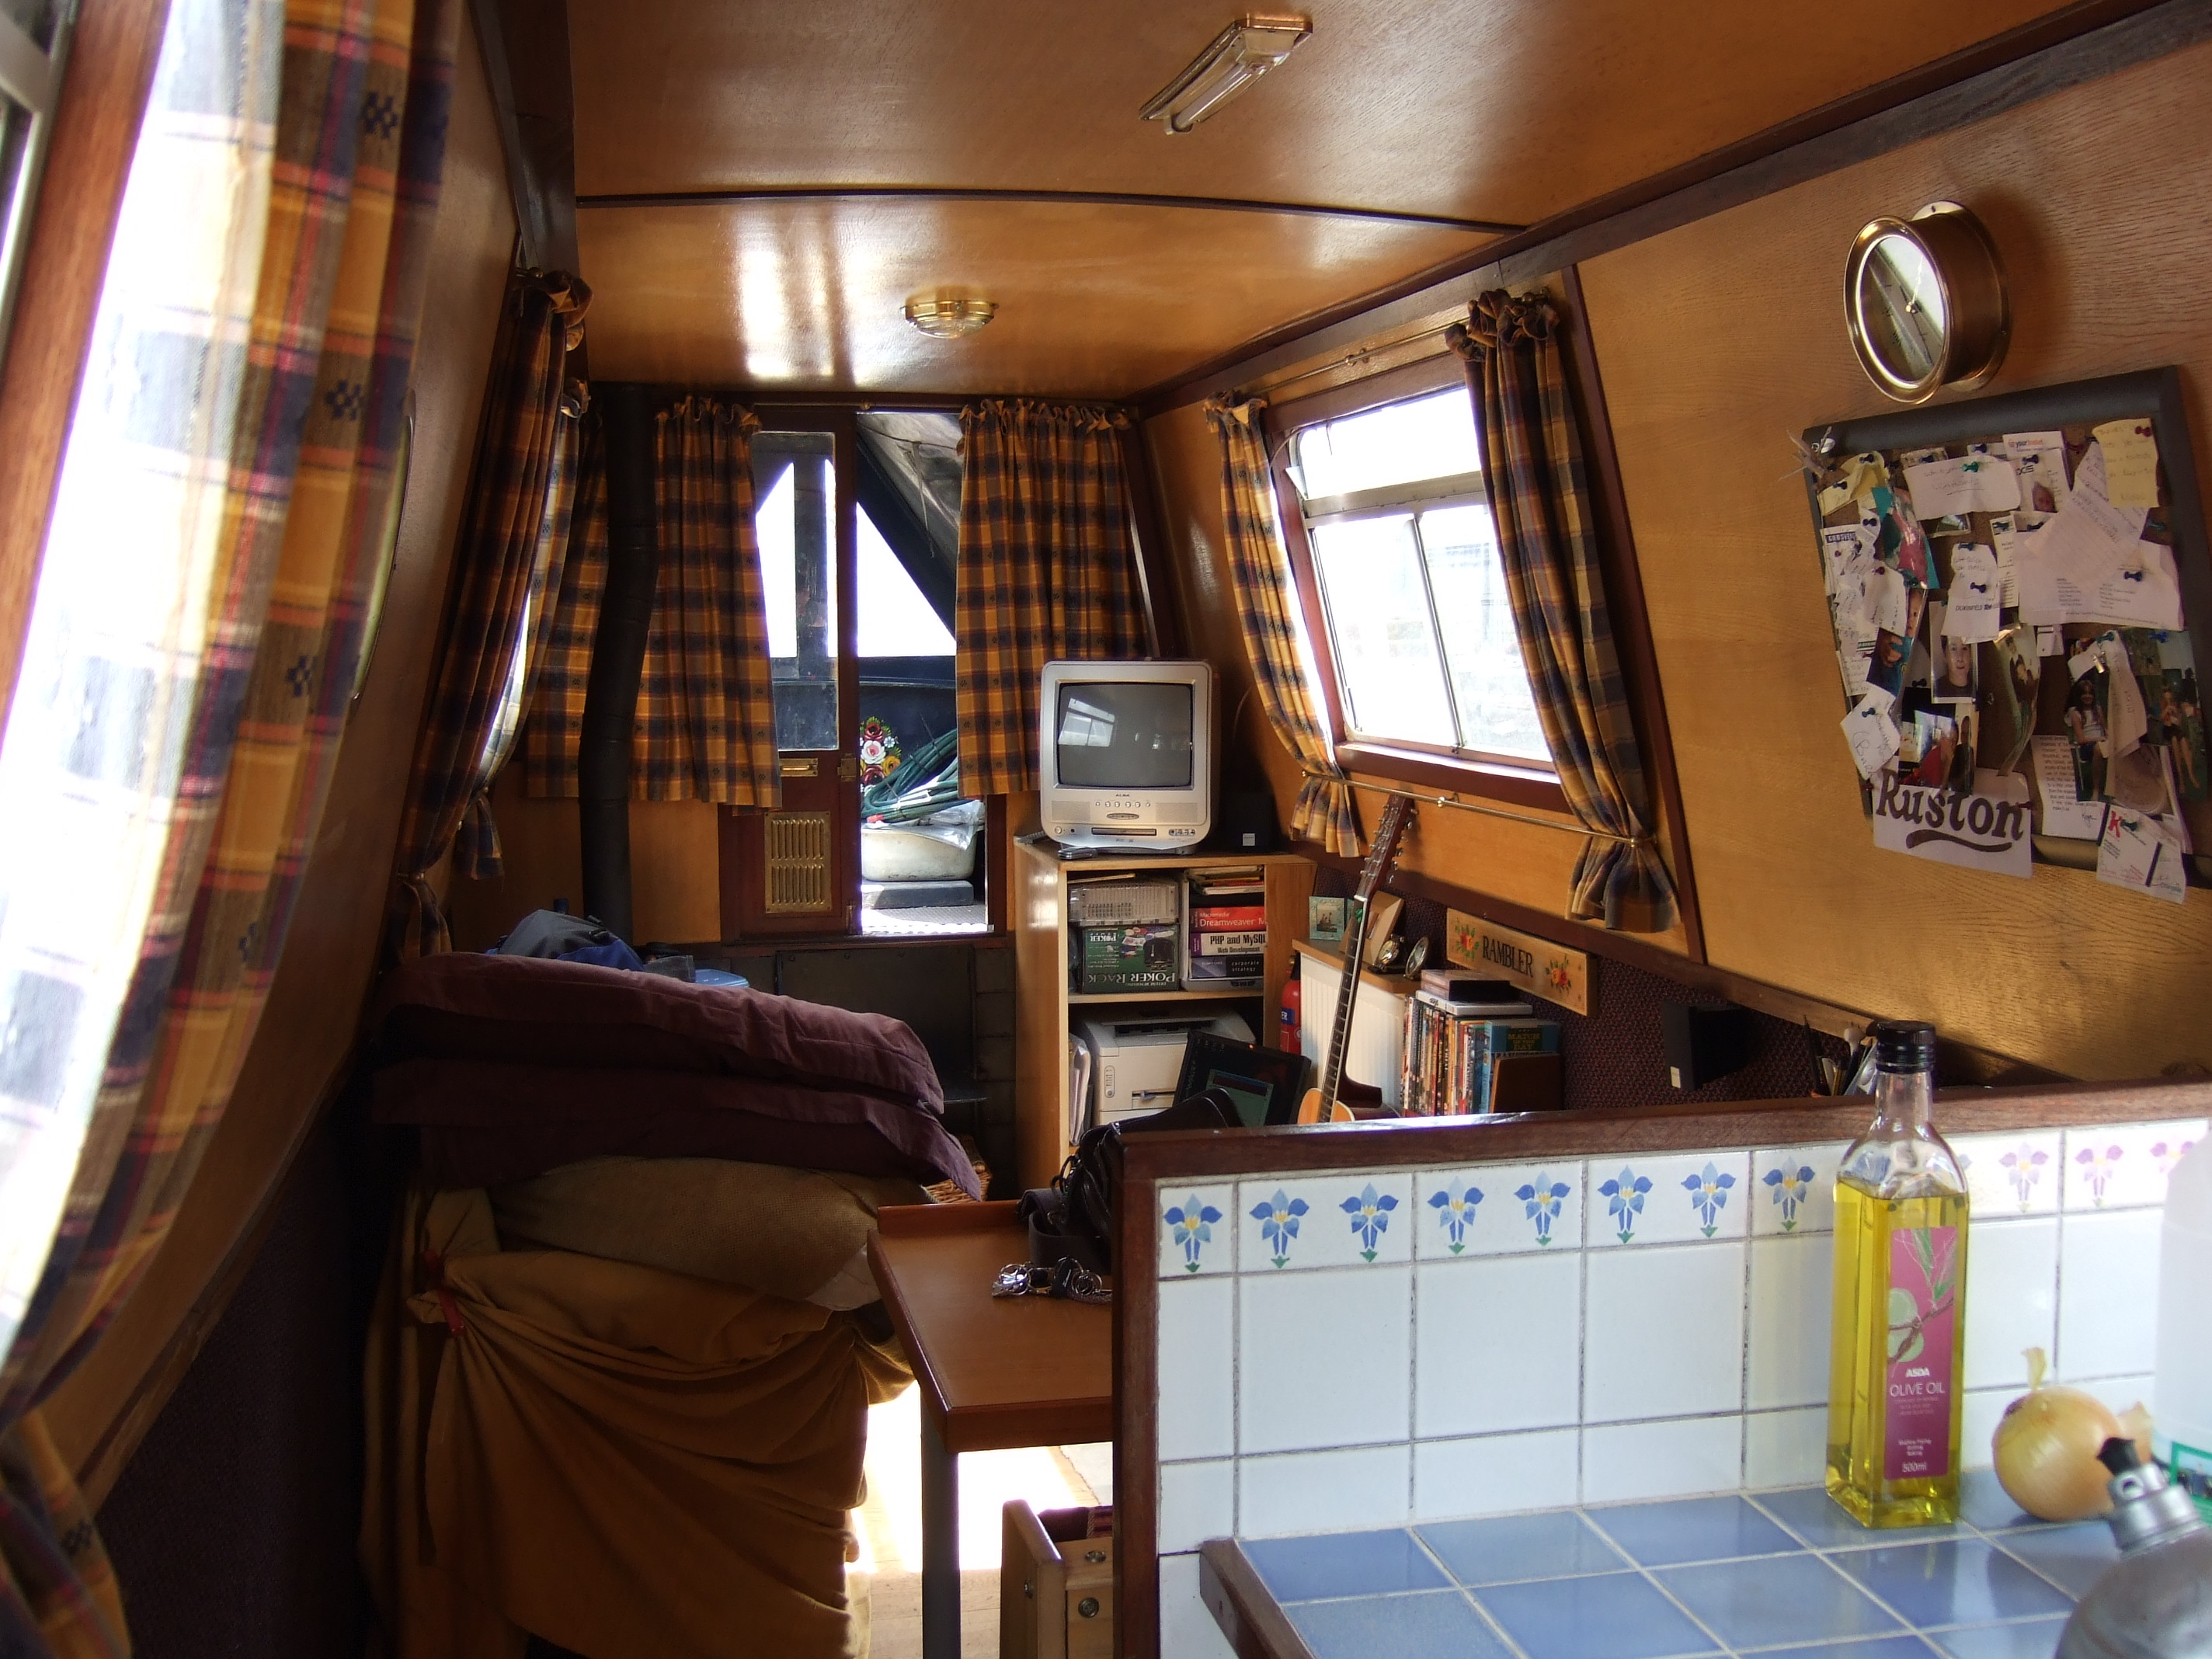 My Narrowboat For The Narrow Minded